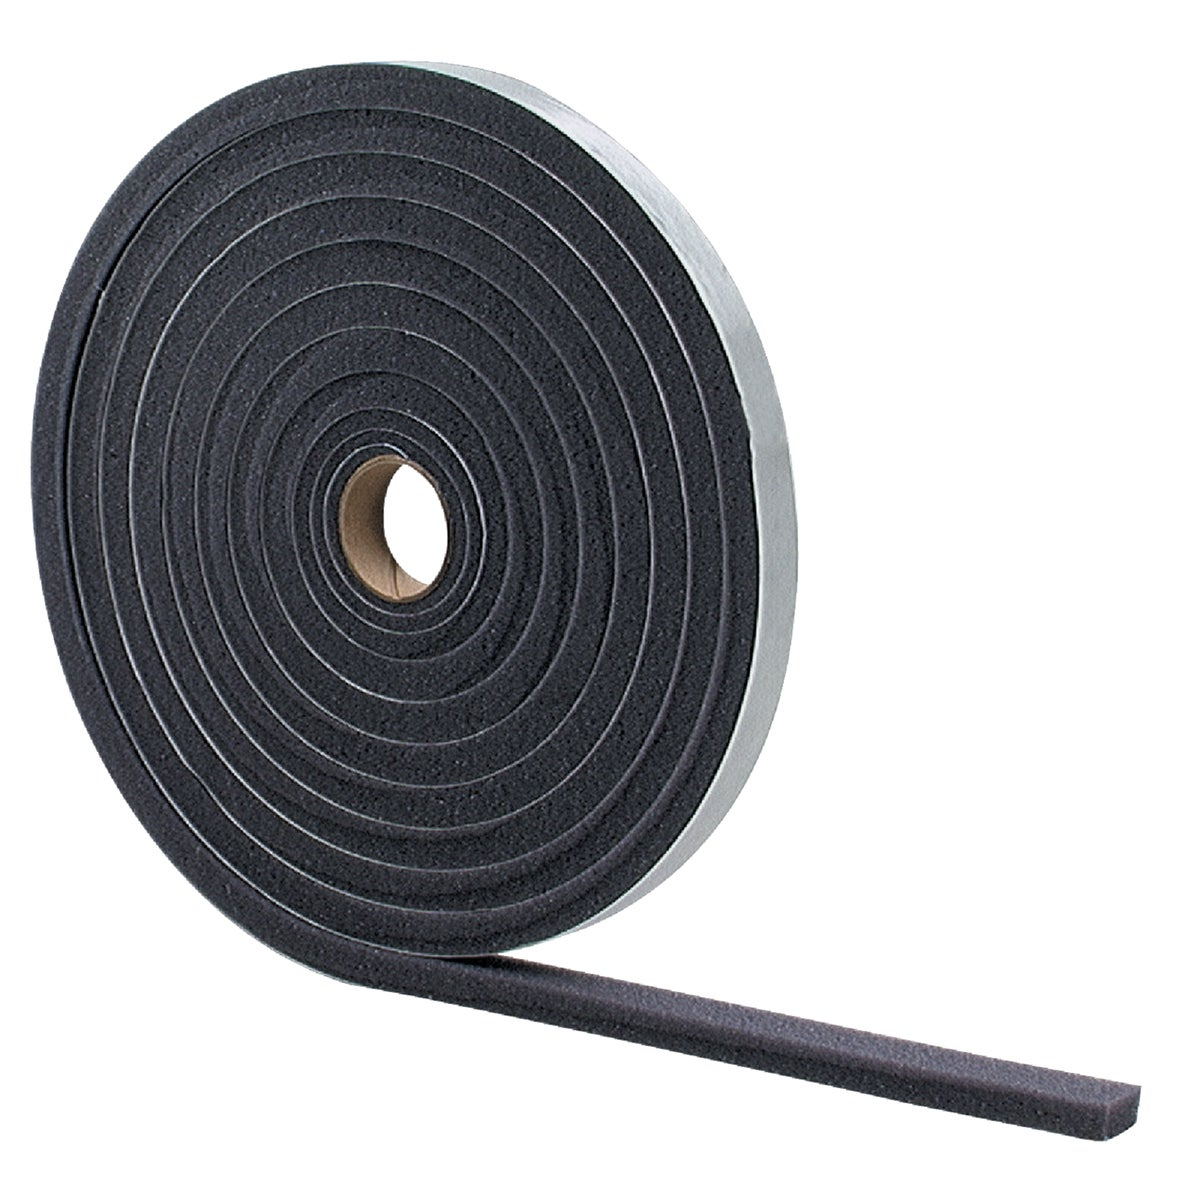 "1/2X3/4""X17' FOAM TAPE - 02113 by M D Building Prod"